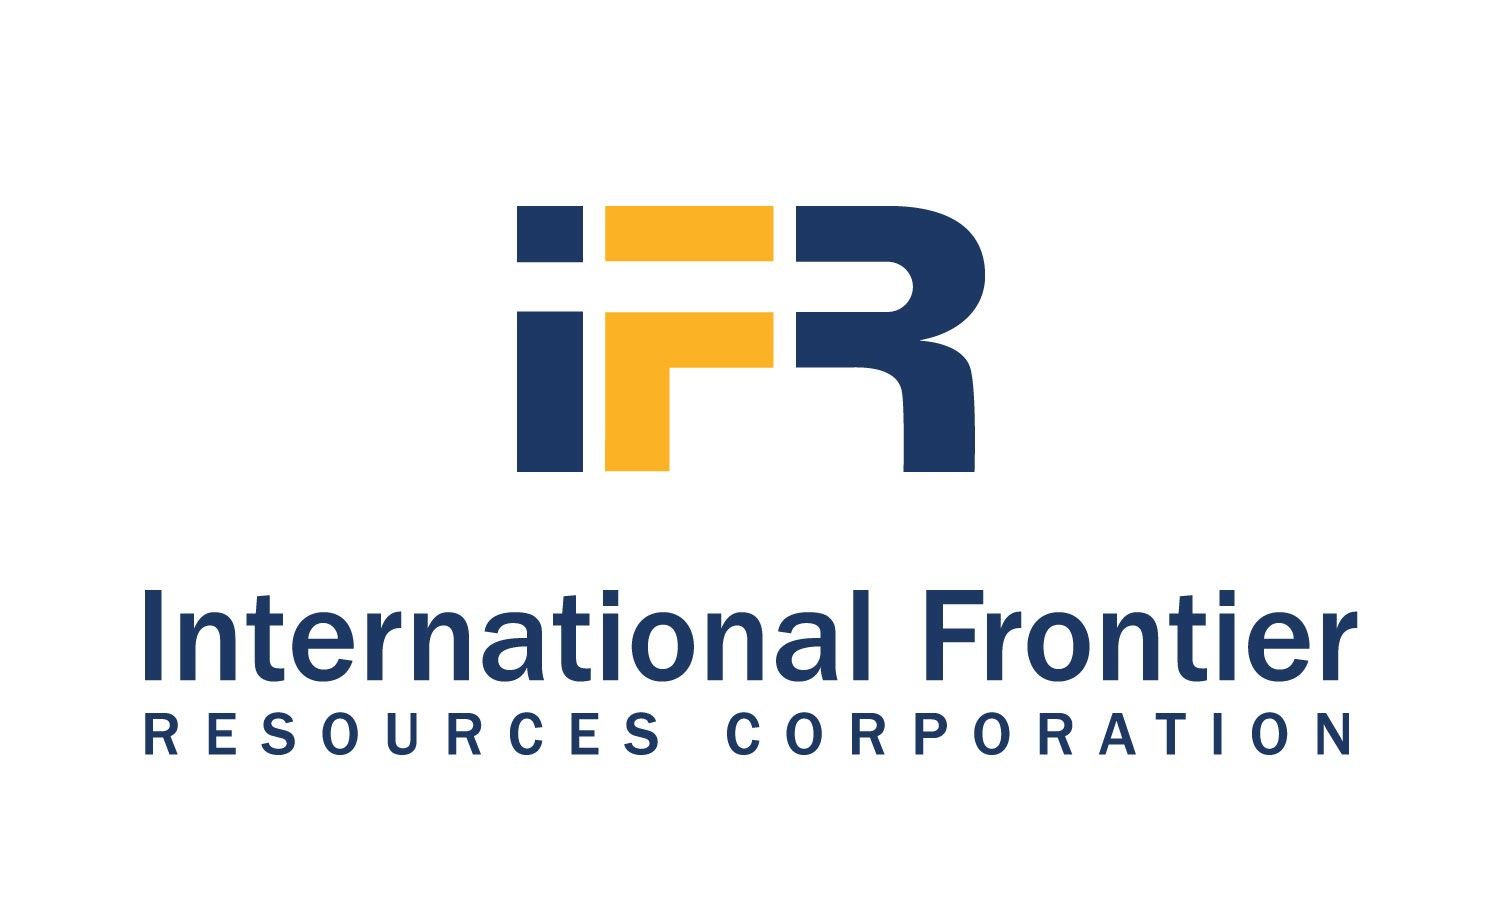 IFR Announces Rights Offering and Corporate Update